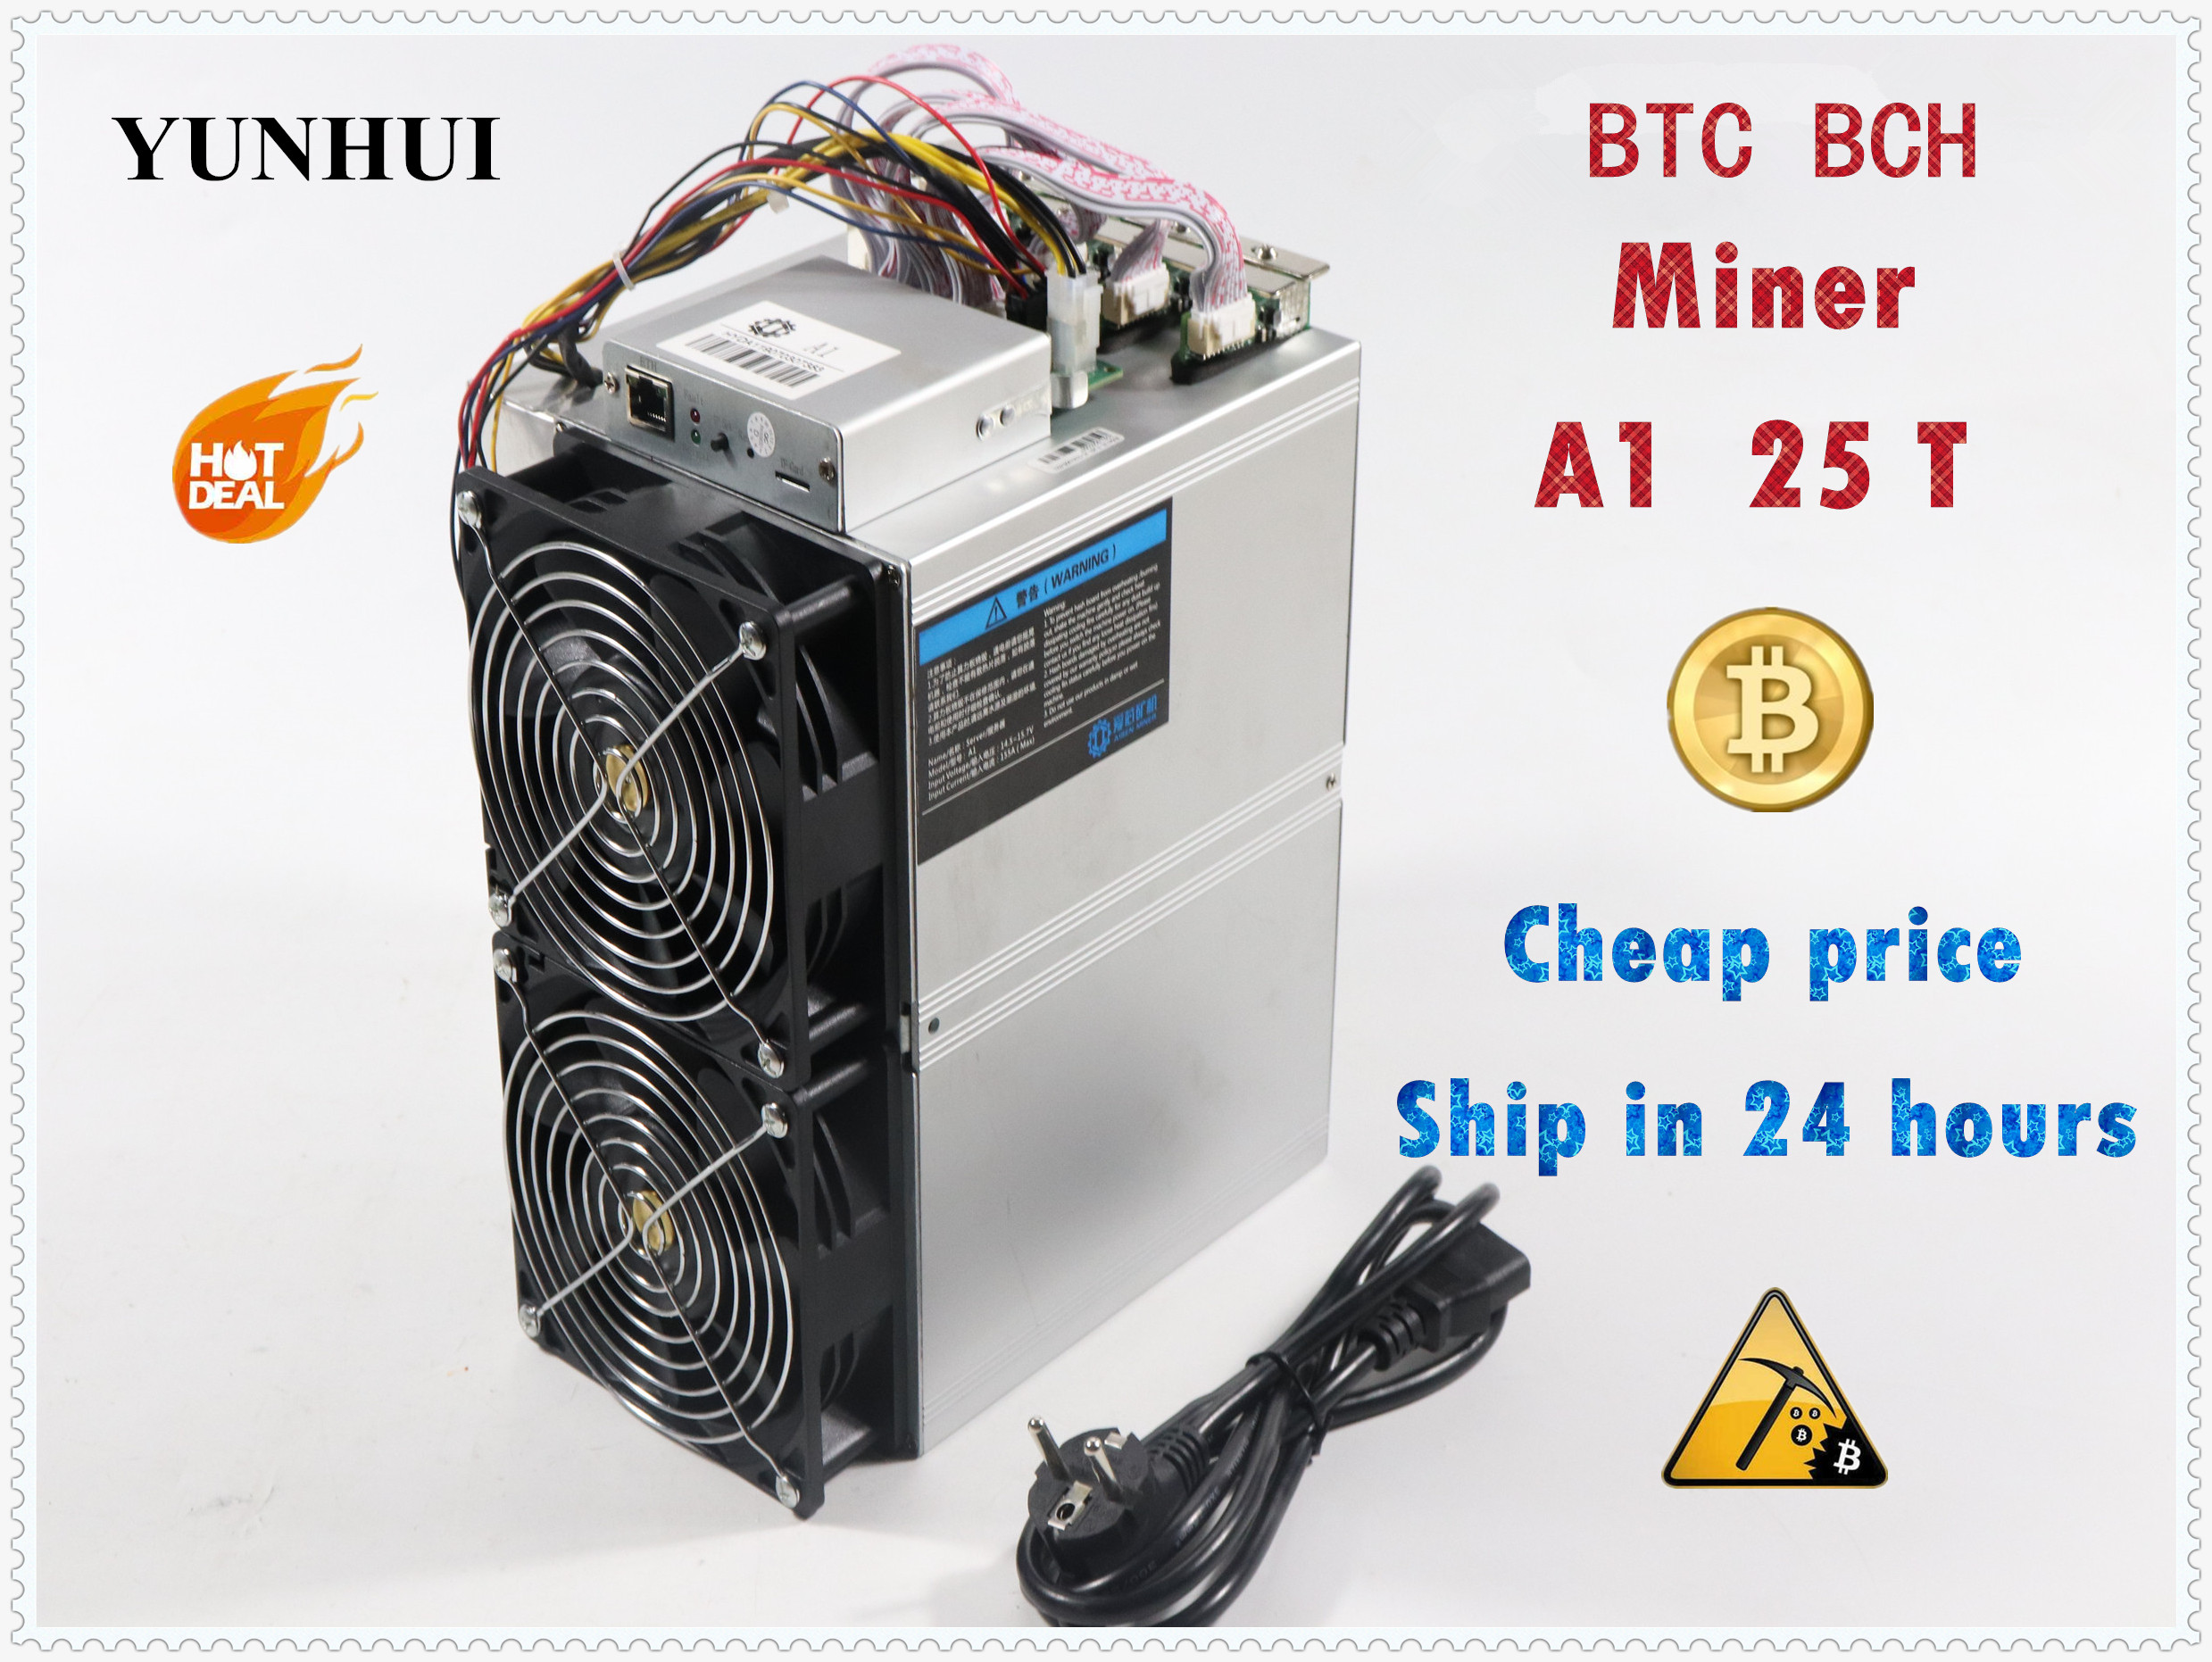 btc-bch-miner-love-core-a1-miner-aixin-a1-25t-with-psu-economic-than-antminer-s9-s11-s15-s17-t9-t15-t17-whatsminer-m3x